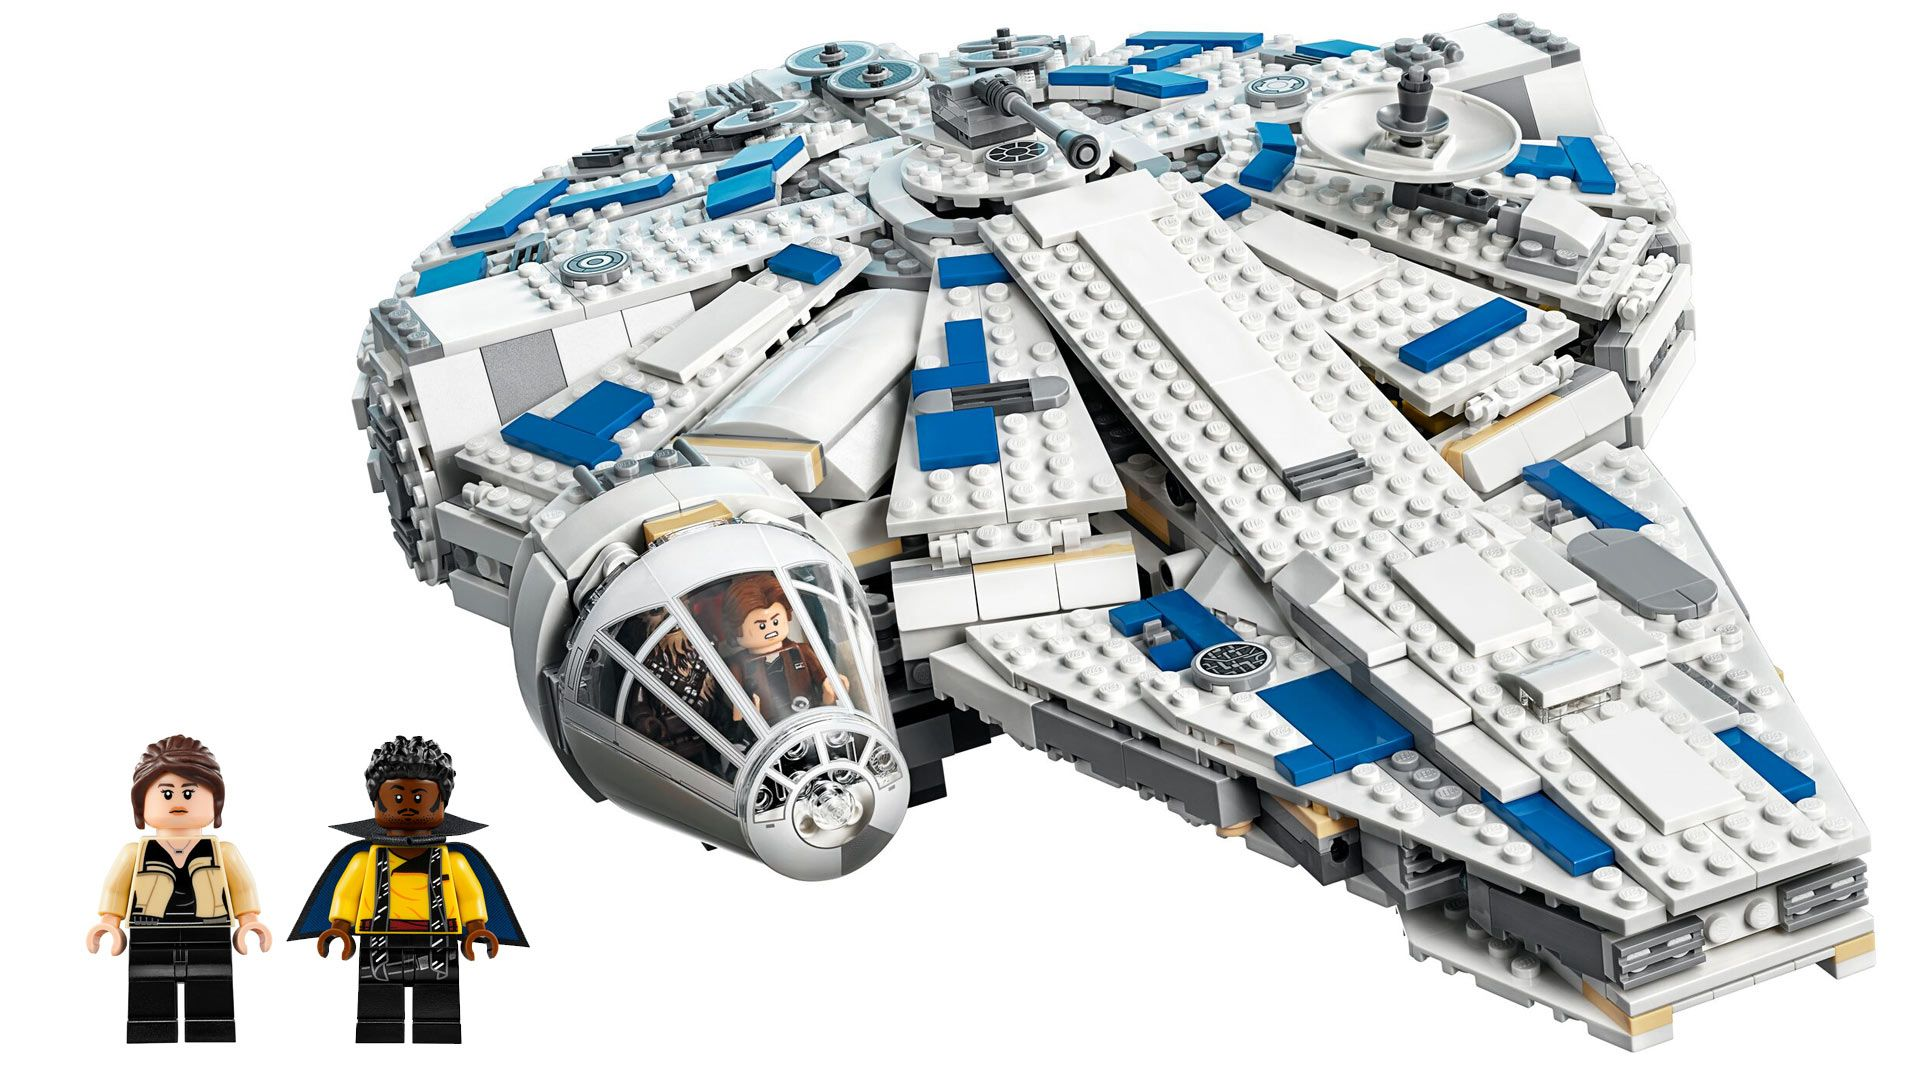 LEGO Star Wars Sets 2018 at #ToyFair2018 in New York looking at all ...